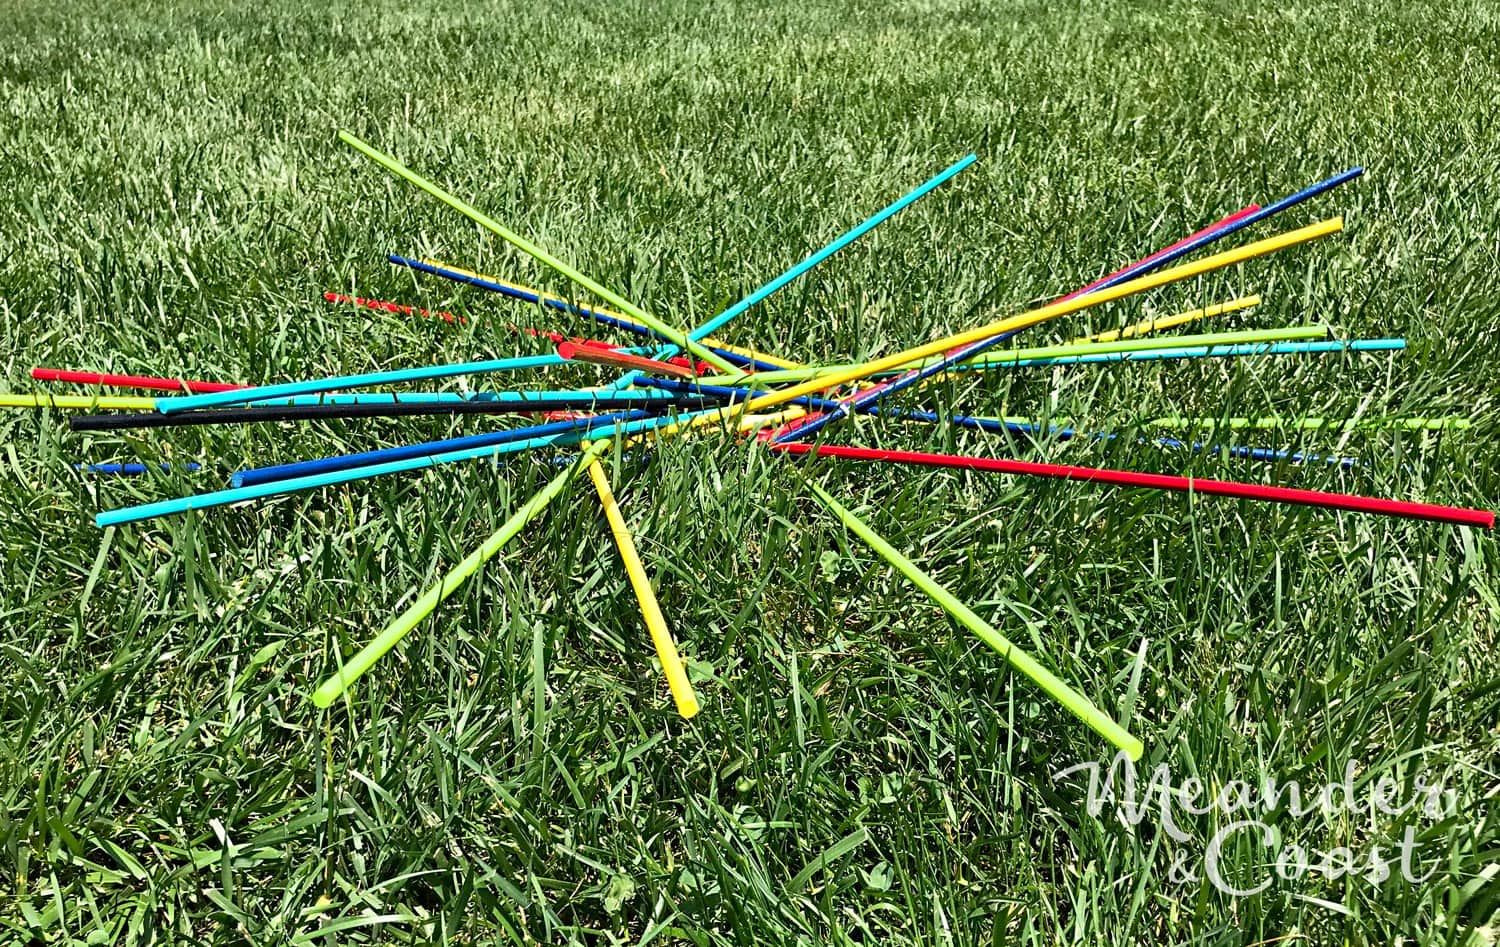 Such a cute game to play outside! Bright colored giant pick up sticks yard game. 15 Minute DIY giant yard game project from Meander & Coast. These would be perfect to take camping this summer! Make a giant outdoor game of pick up sticks. Quick and easy craft. | Meander & Coast #giantgame #pickupsticks #oversizedgame #giantyardgames #bigyardgame #campinggames